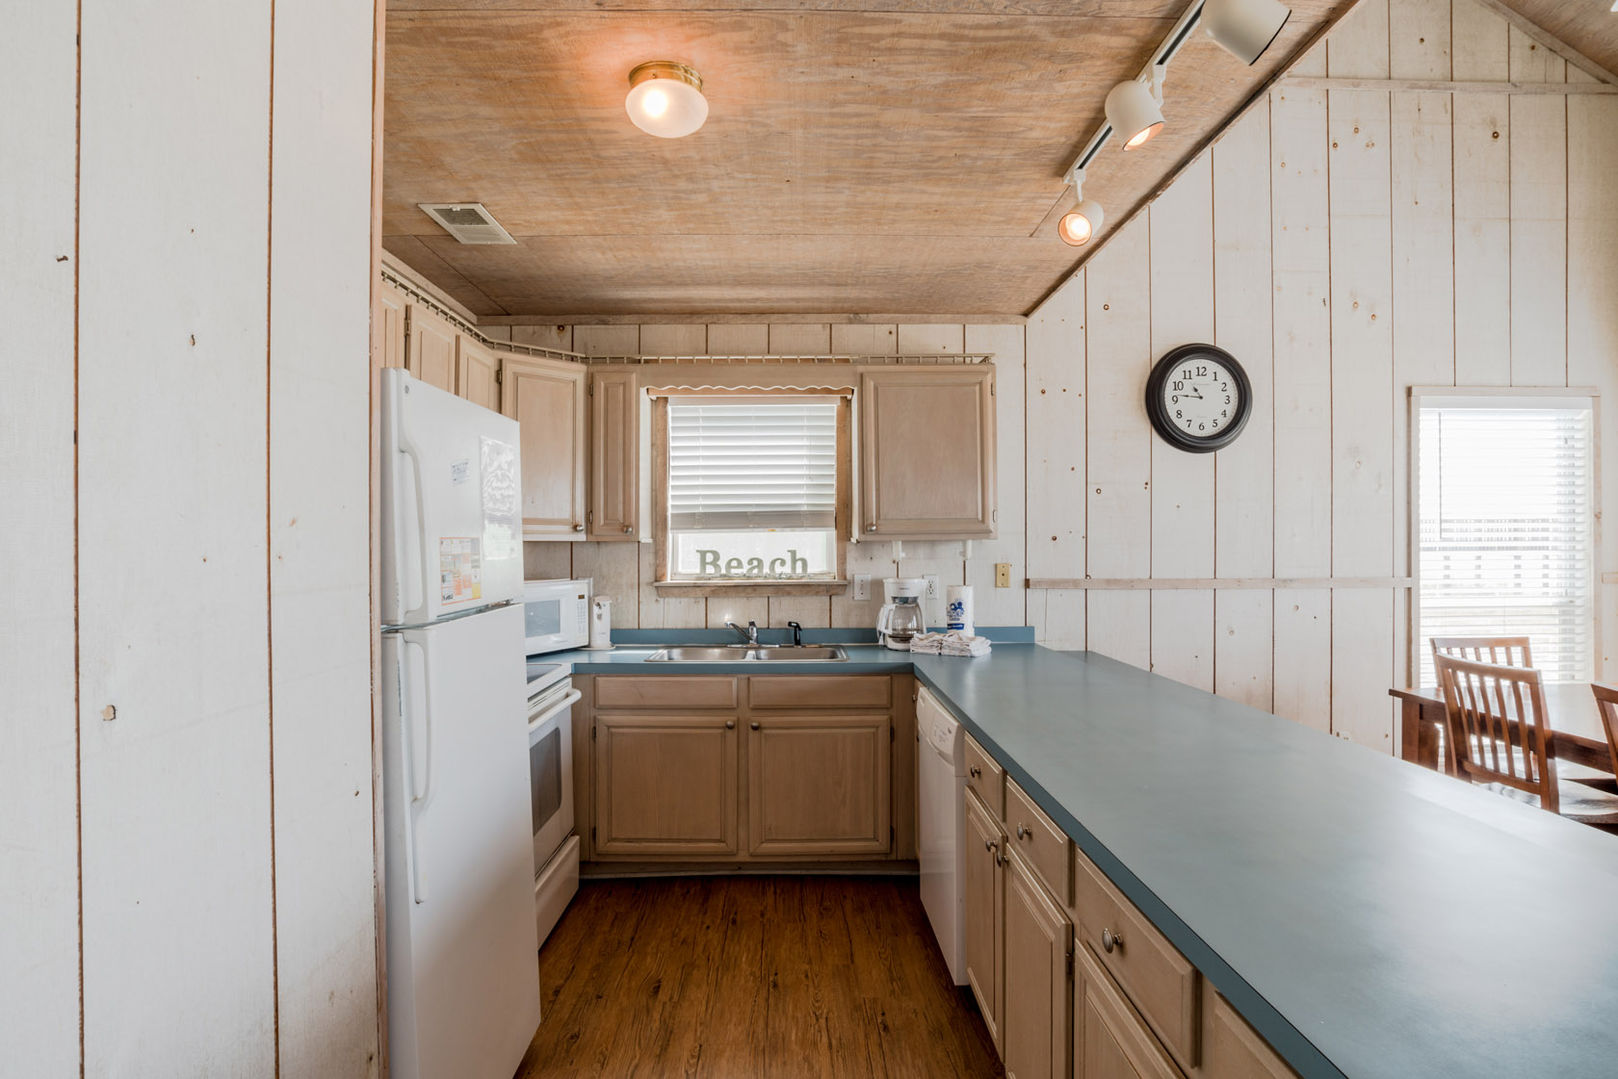 Kitchen with Counter, Refrigerator, Microwave, and Dining Set.